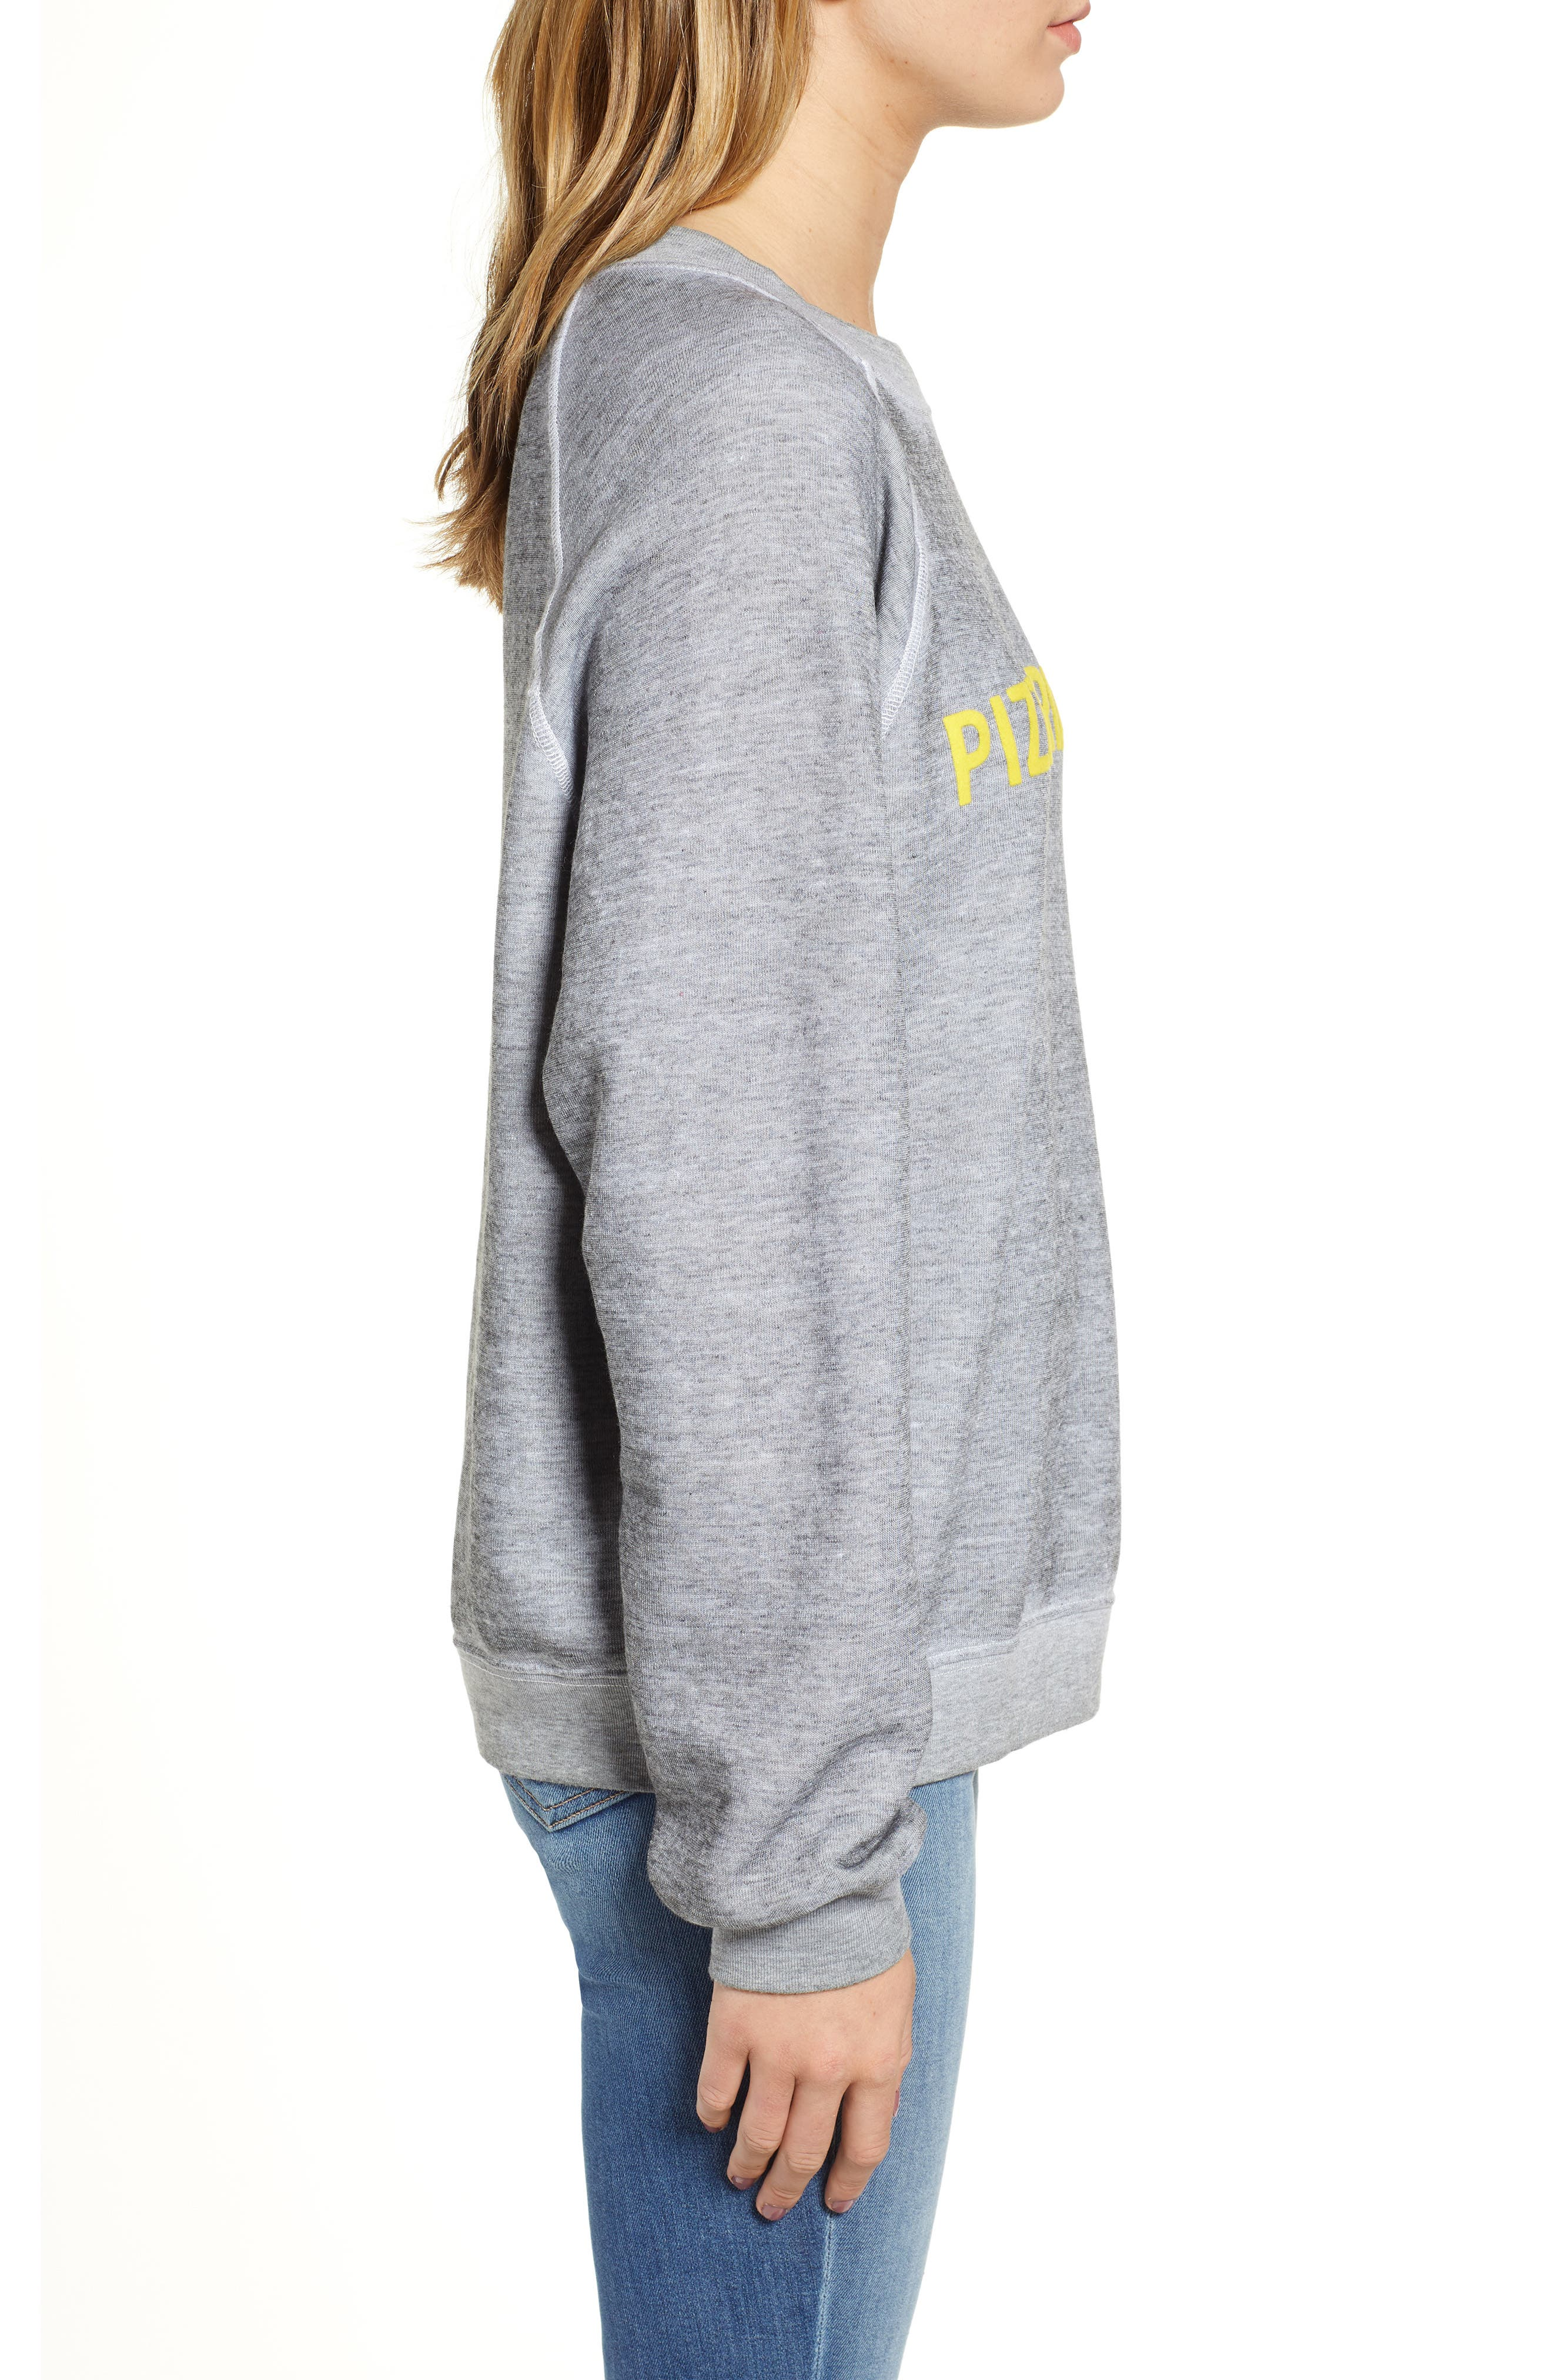 Pizzatarian Sommers Sweatshirt,                             Alternate thumbnail 3, color,                             020